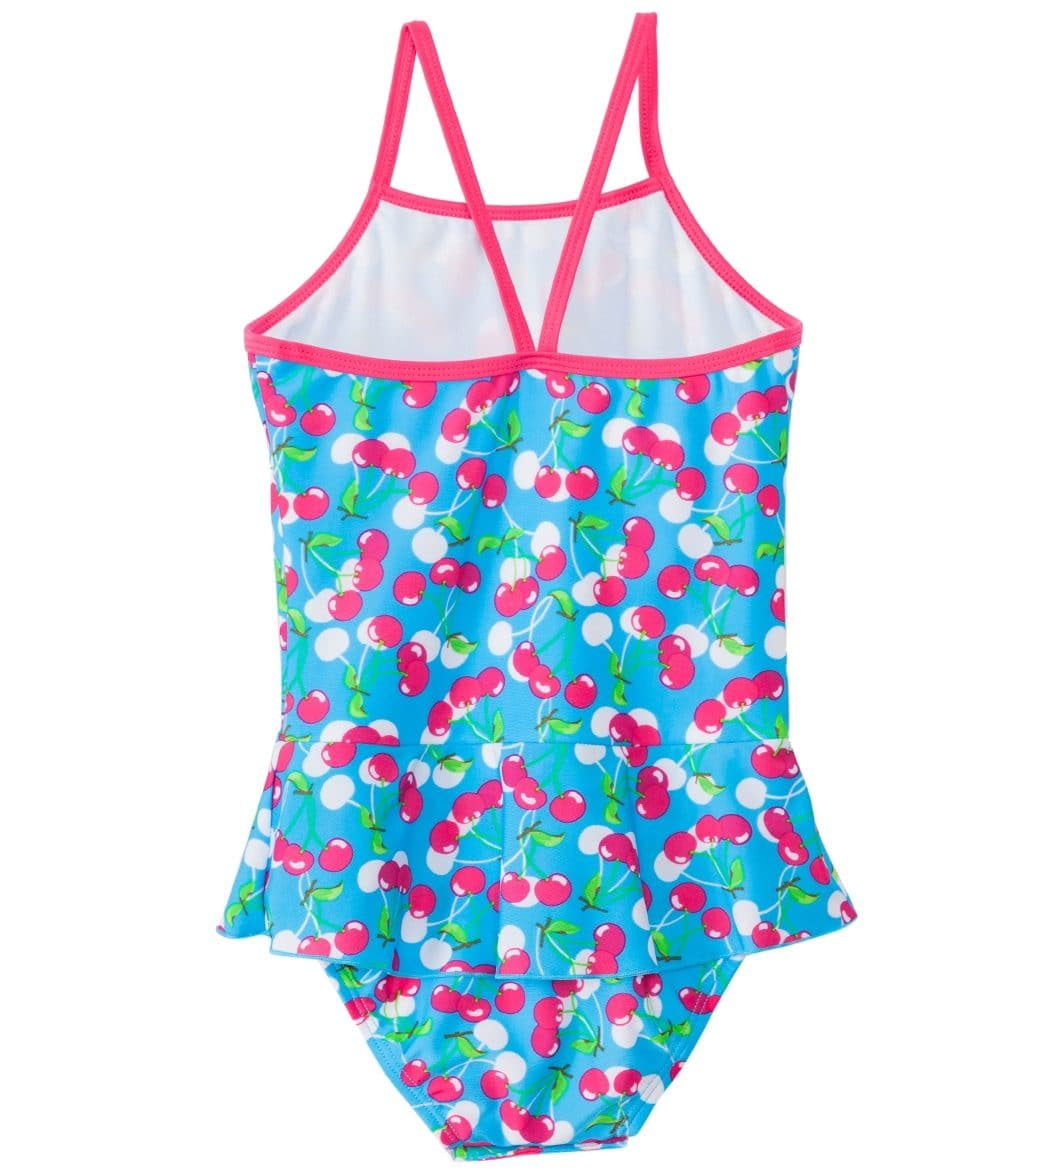 8ea21cd55bf55 SnapMe Girls' Very Cherry Skirted Peplum One Piece Swimsuit UVP 50+  (6mos-8yrs) at SwimOutlet.com